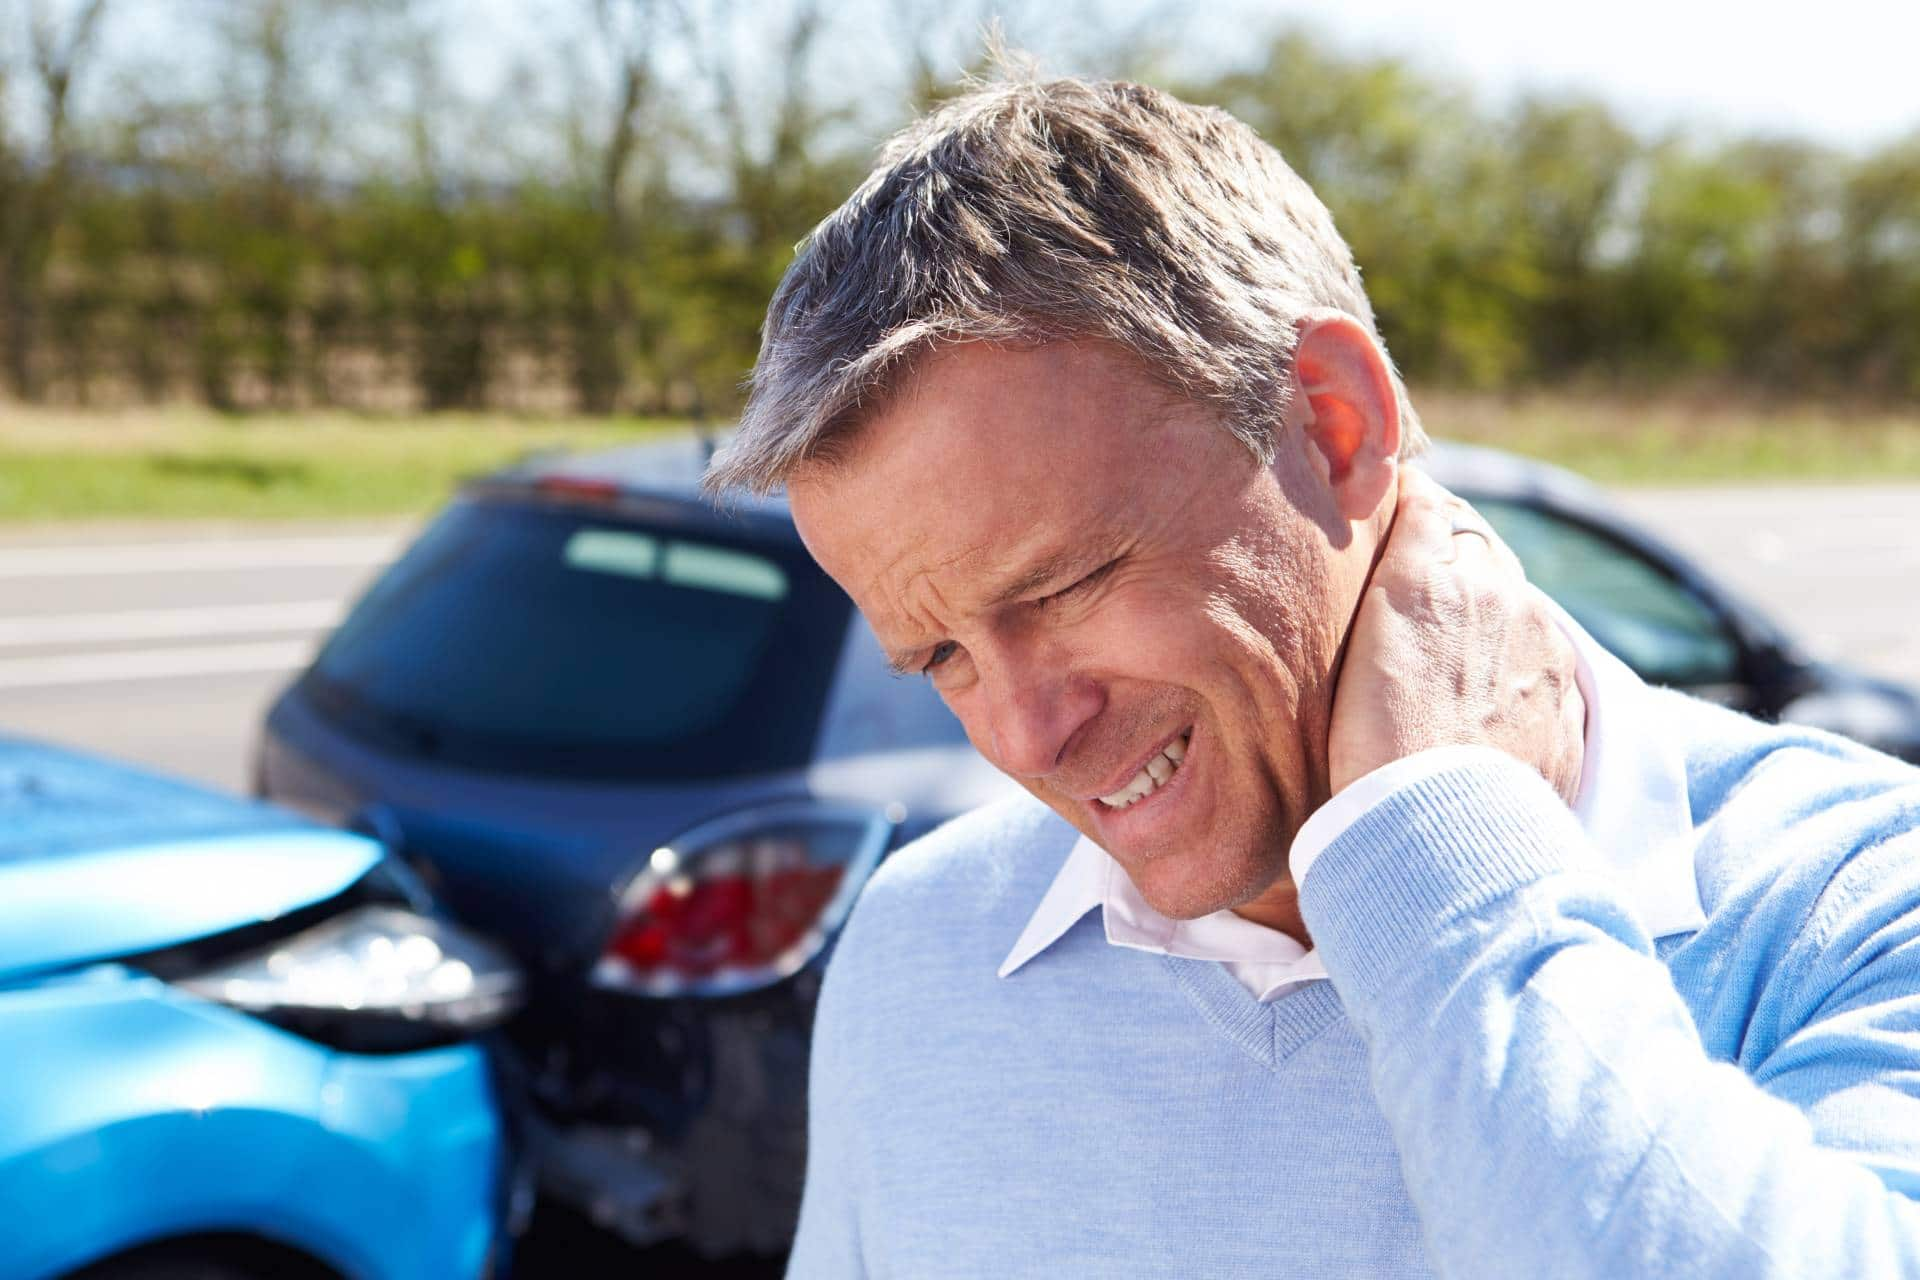 Injured in a car accident? Schedule a free consultation with our personal injury lawyers at the Angell Law Firm in Panthersville, Ga.